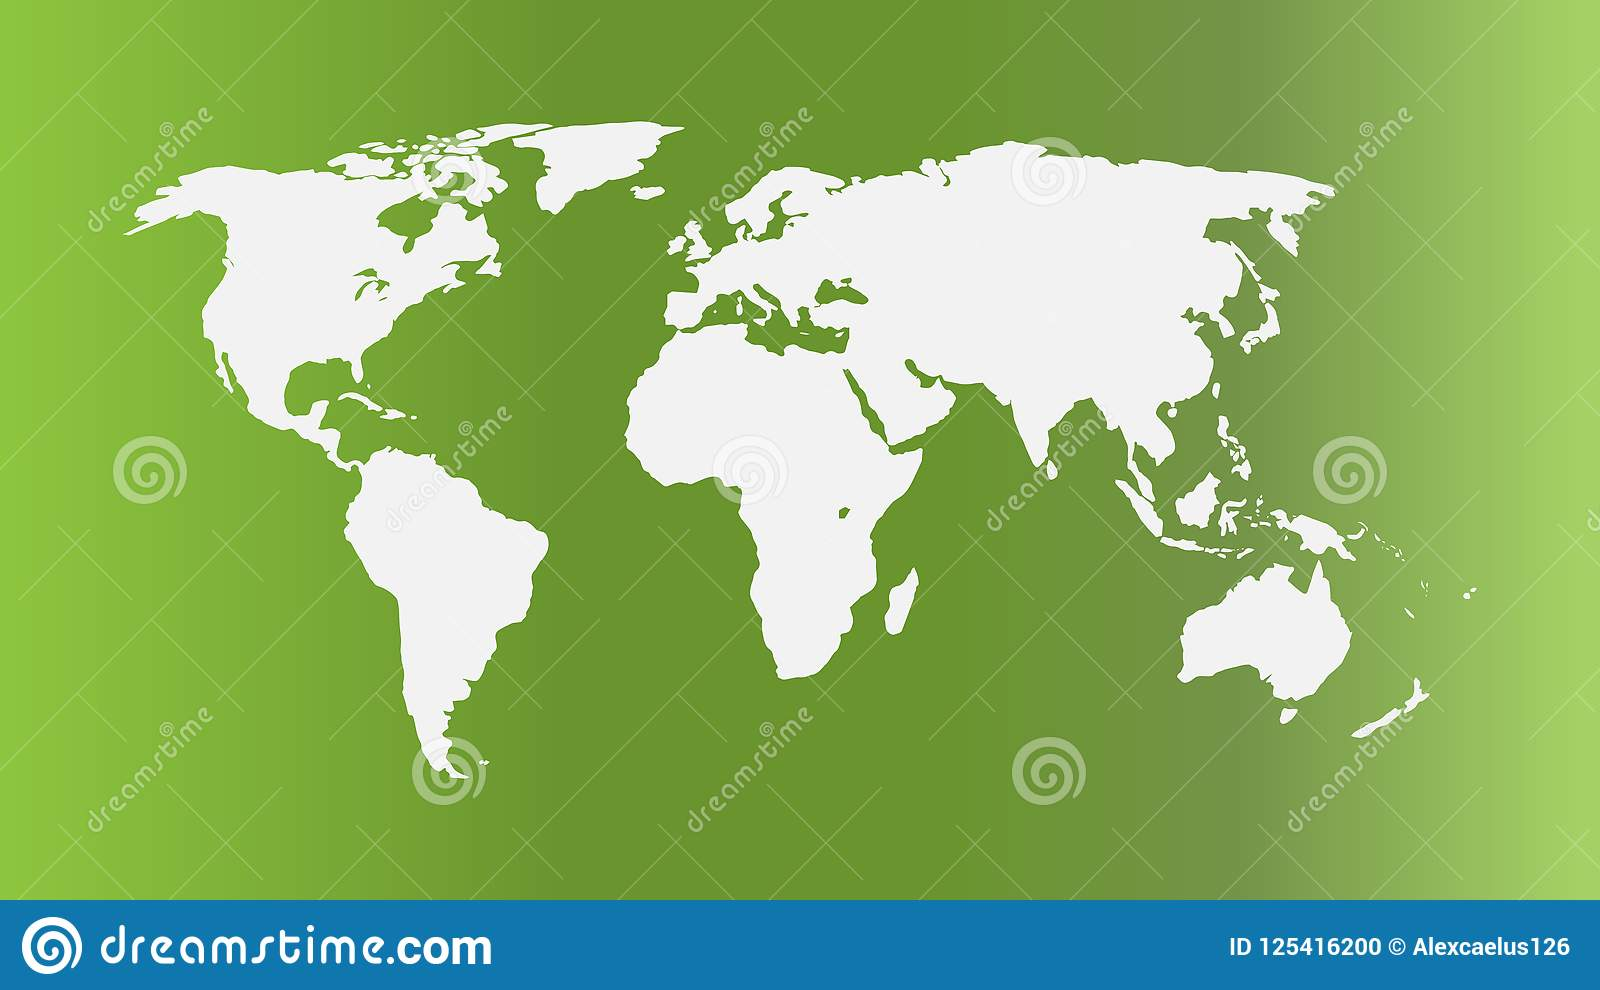 Flat World Map Vector.World Map Vector Ecology Concept Green World Flat Earth Map For